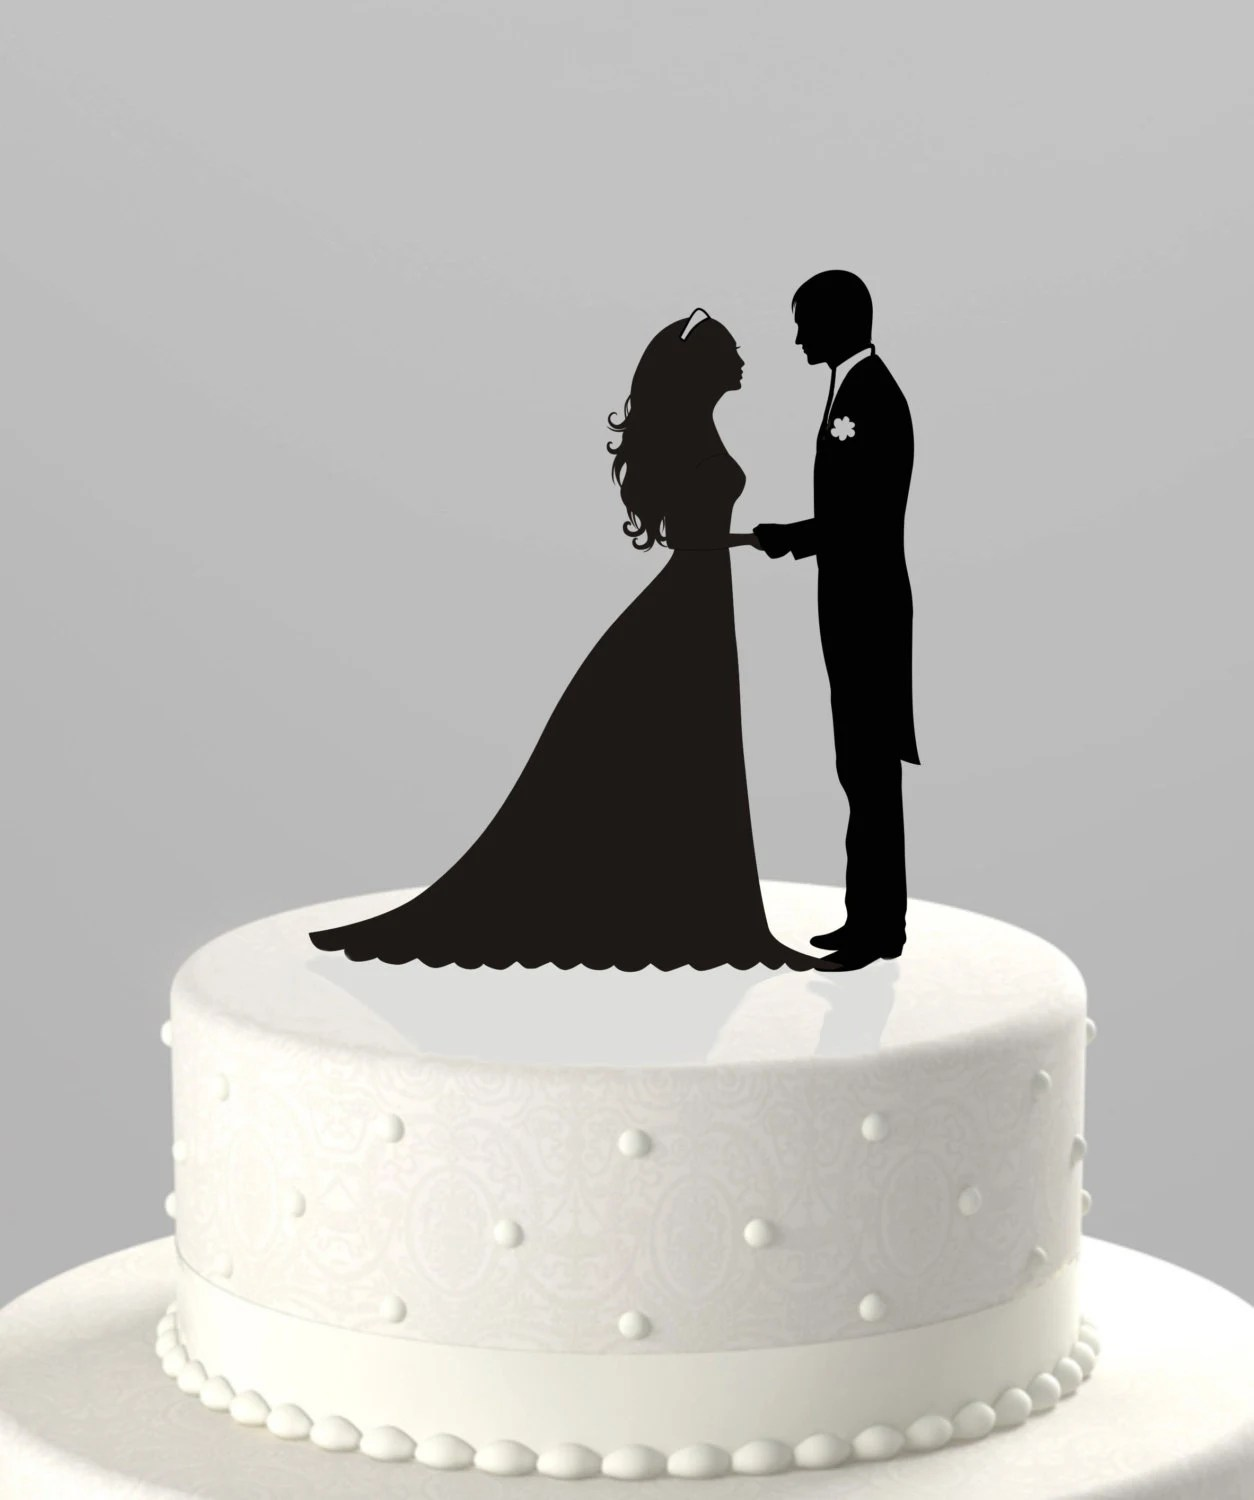 Wedding Cake Topper Silhouette Groom and Bride Acrylic Cake